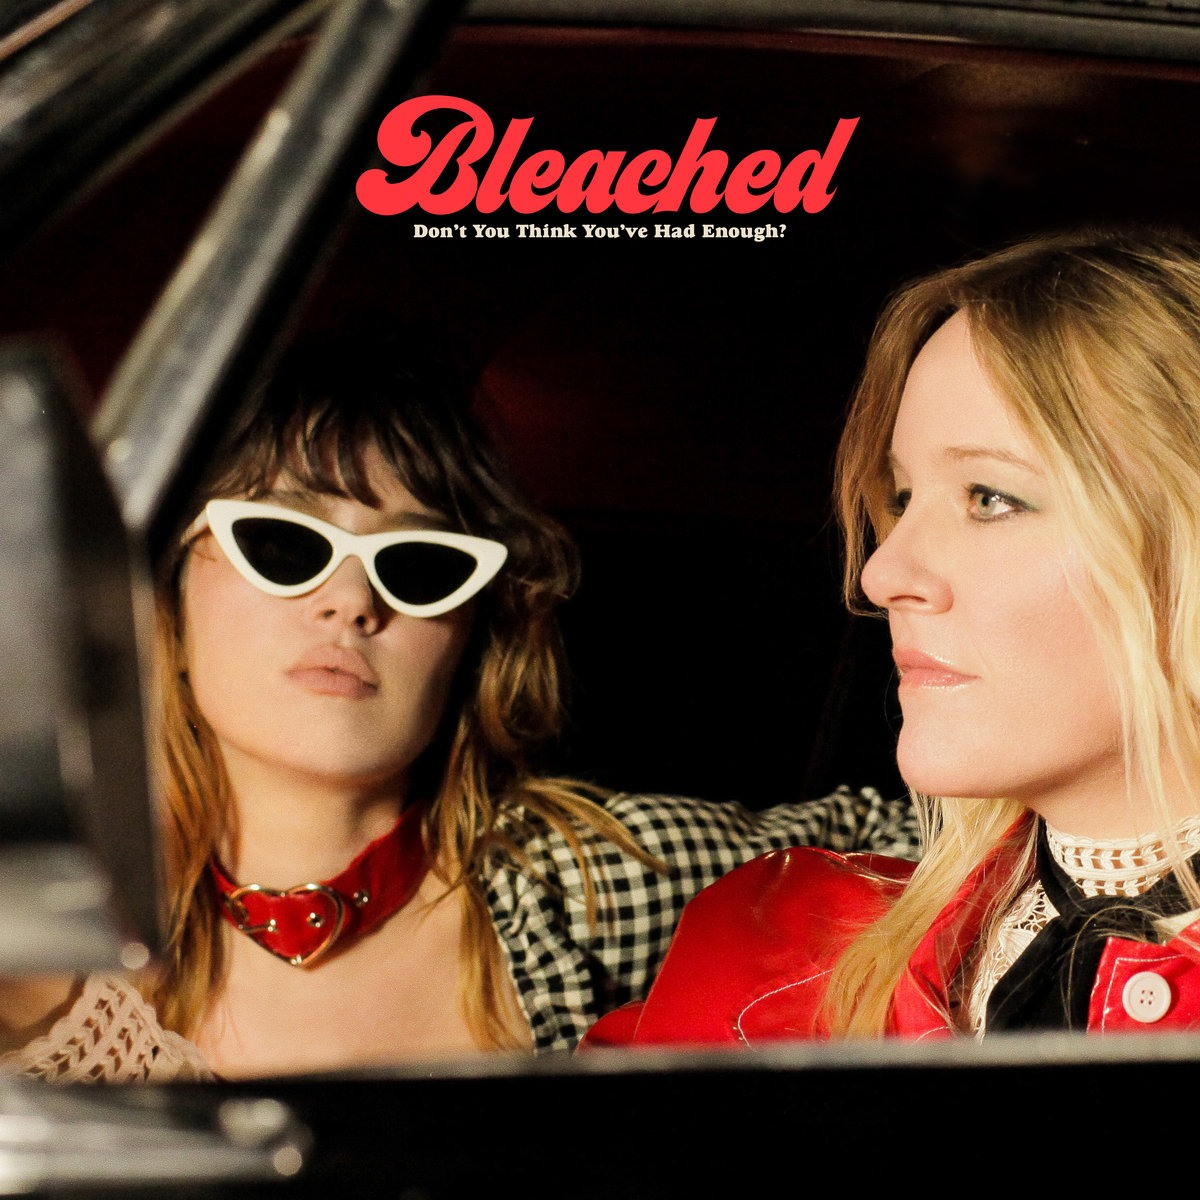 Bleached's 'Don't You Think You've Had Enough?' is a huge leap forward in both style and substance